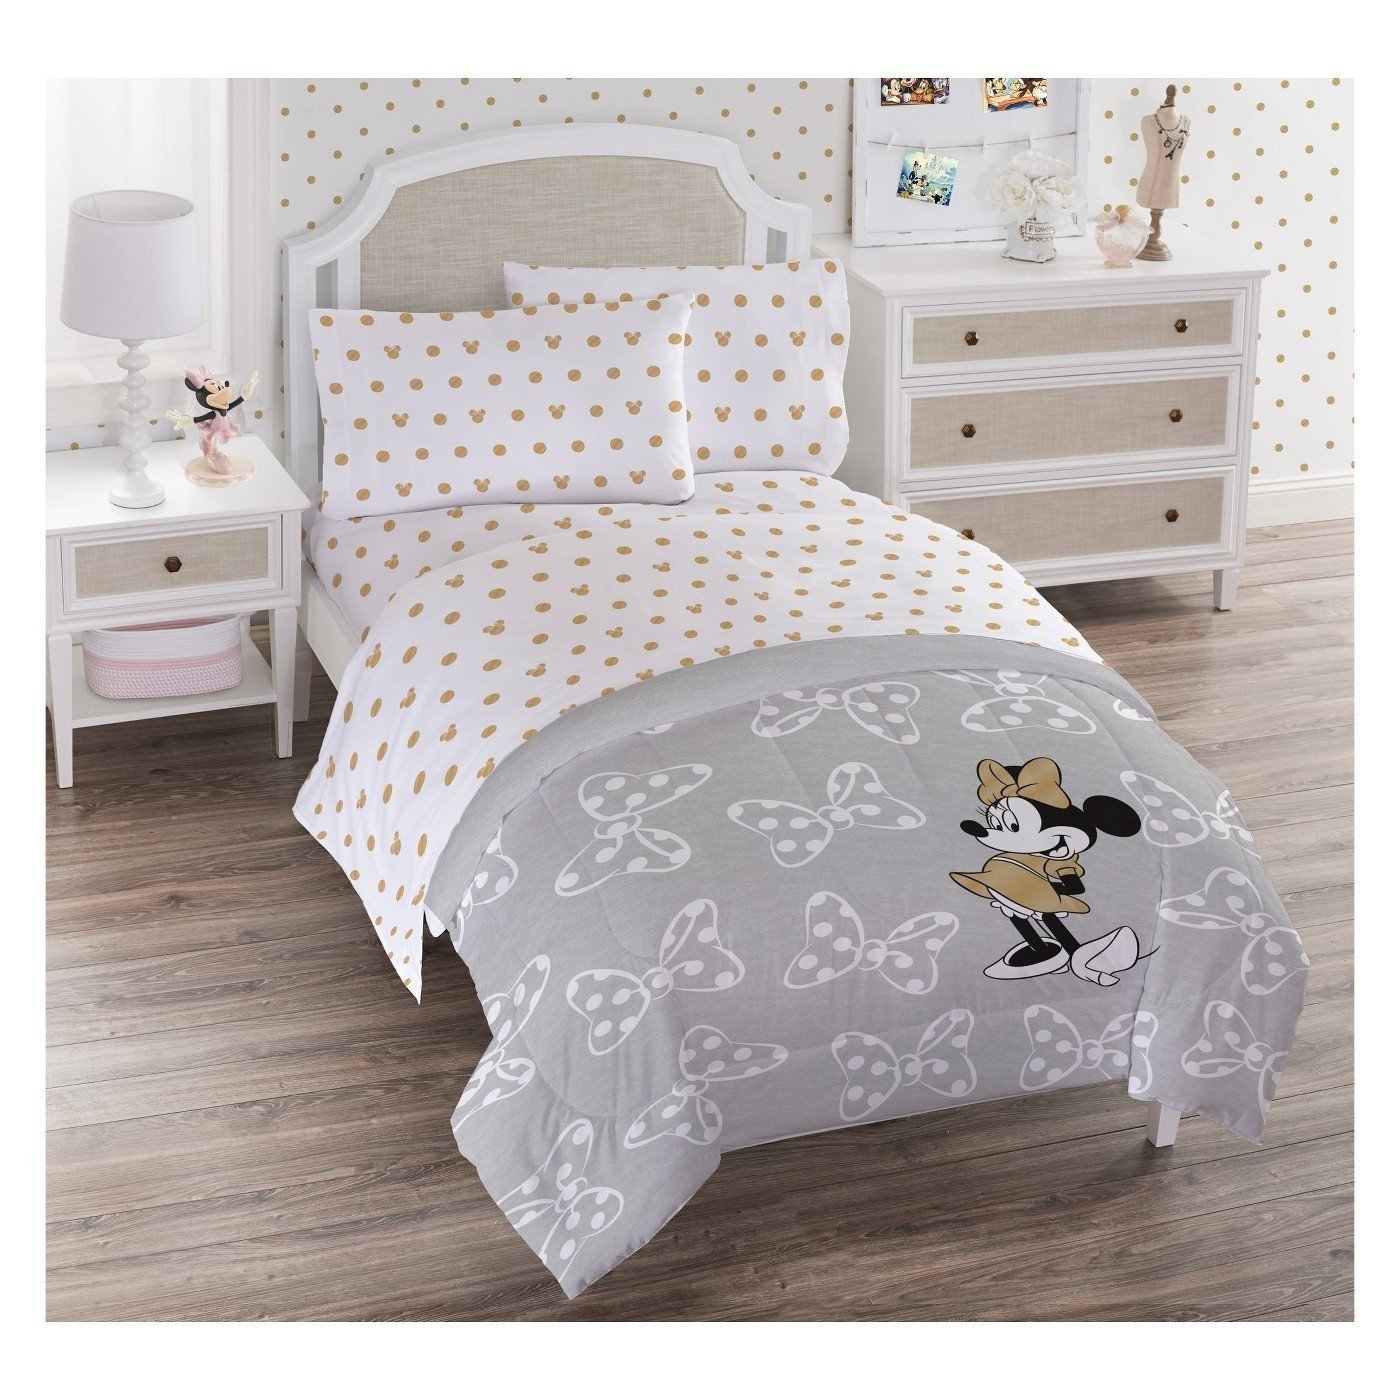 Disney Minnie Mouse Twin Quilt Set Gray/White by Disney